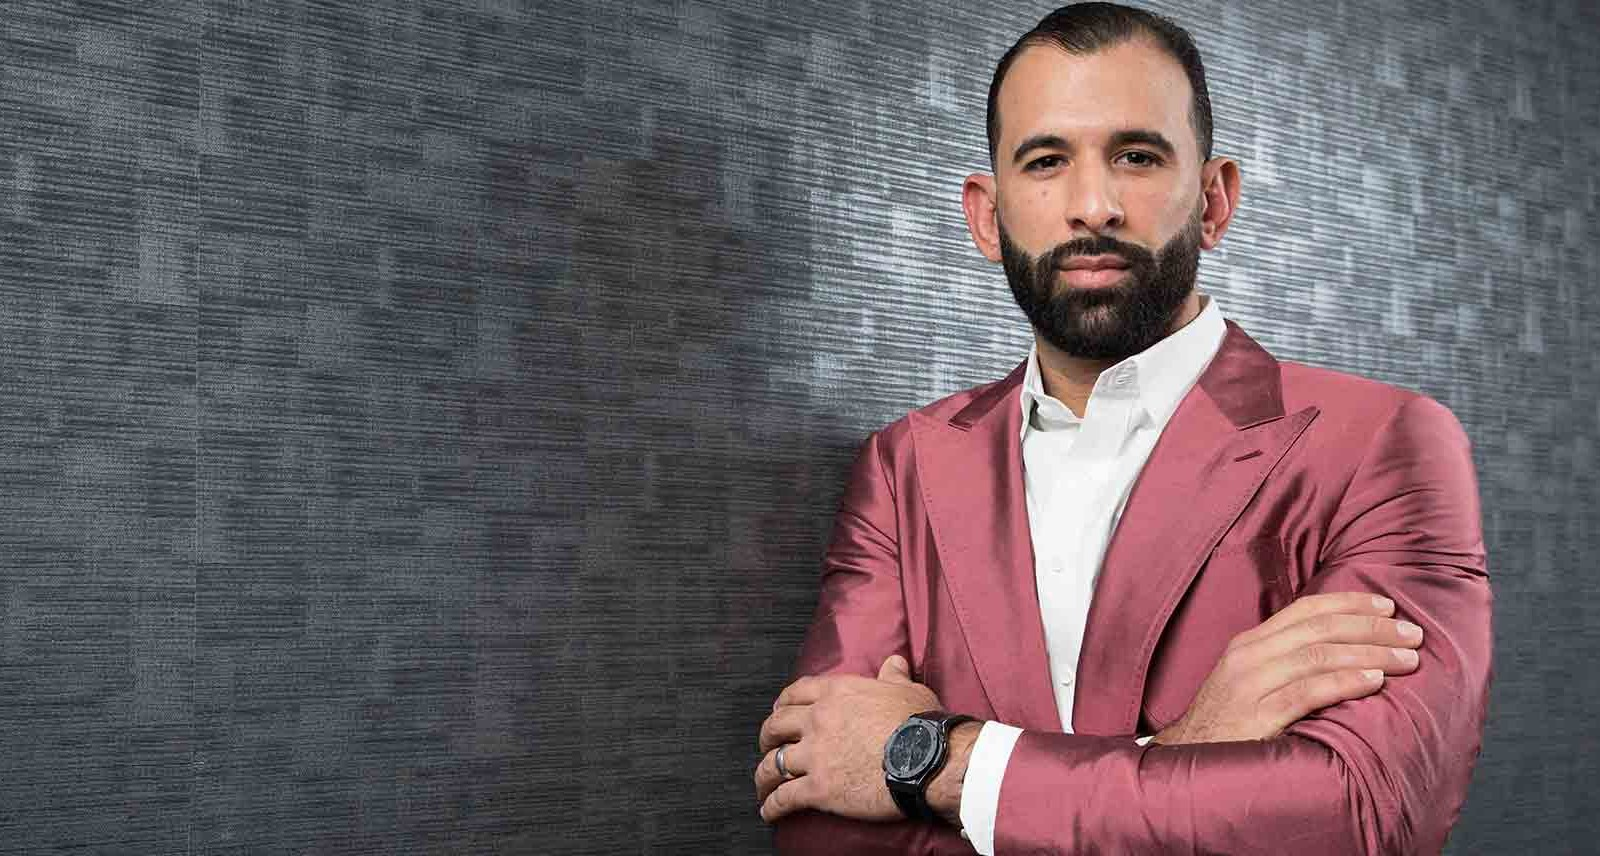 Hublot's Limited-Edition Jose Bautista Watch Is Worth (Bat) Flipping Out Over